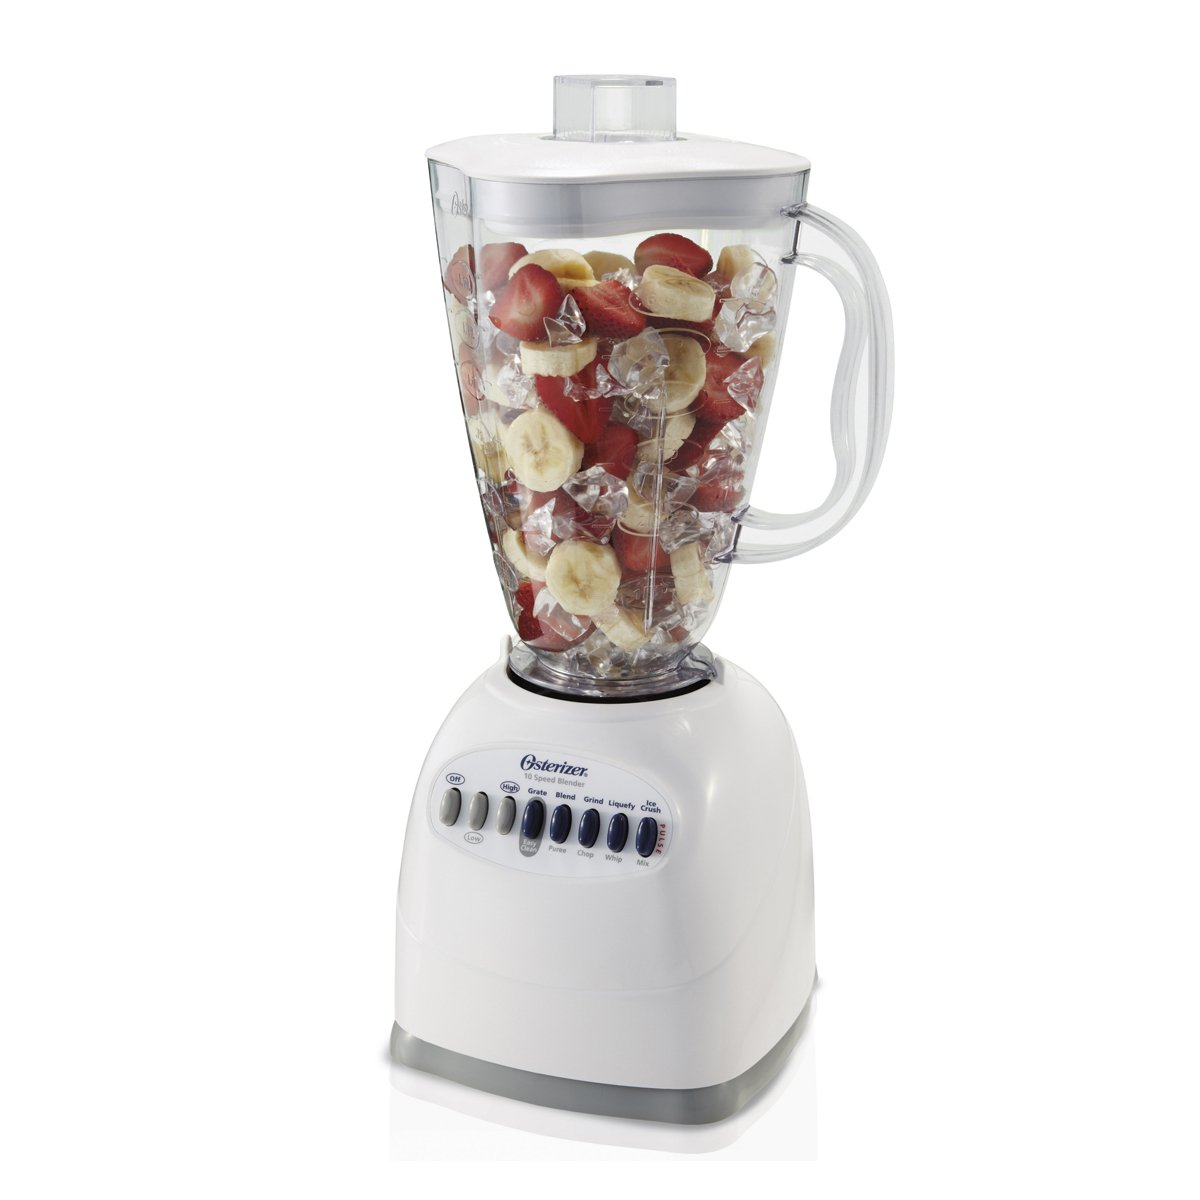 OSTER 6640-022–NP1 10-Speed Blender with Plastic Jar